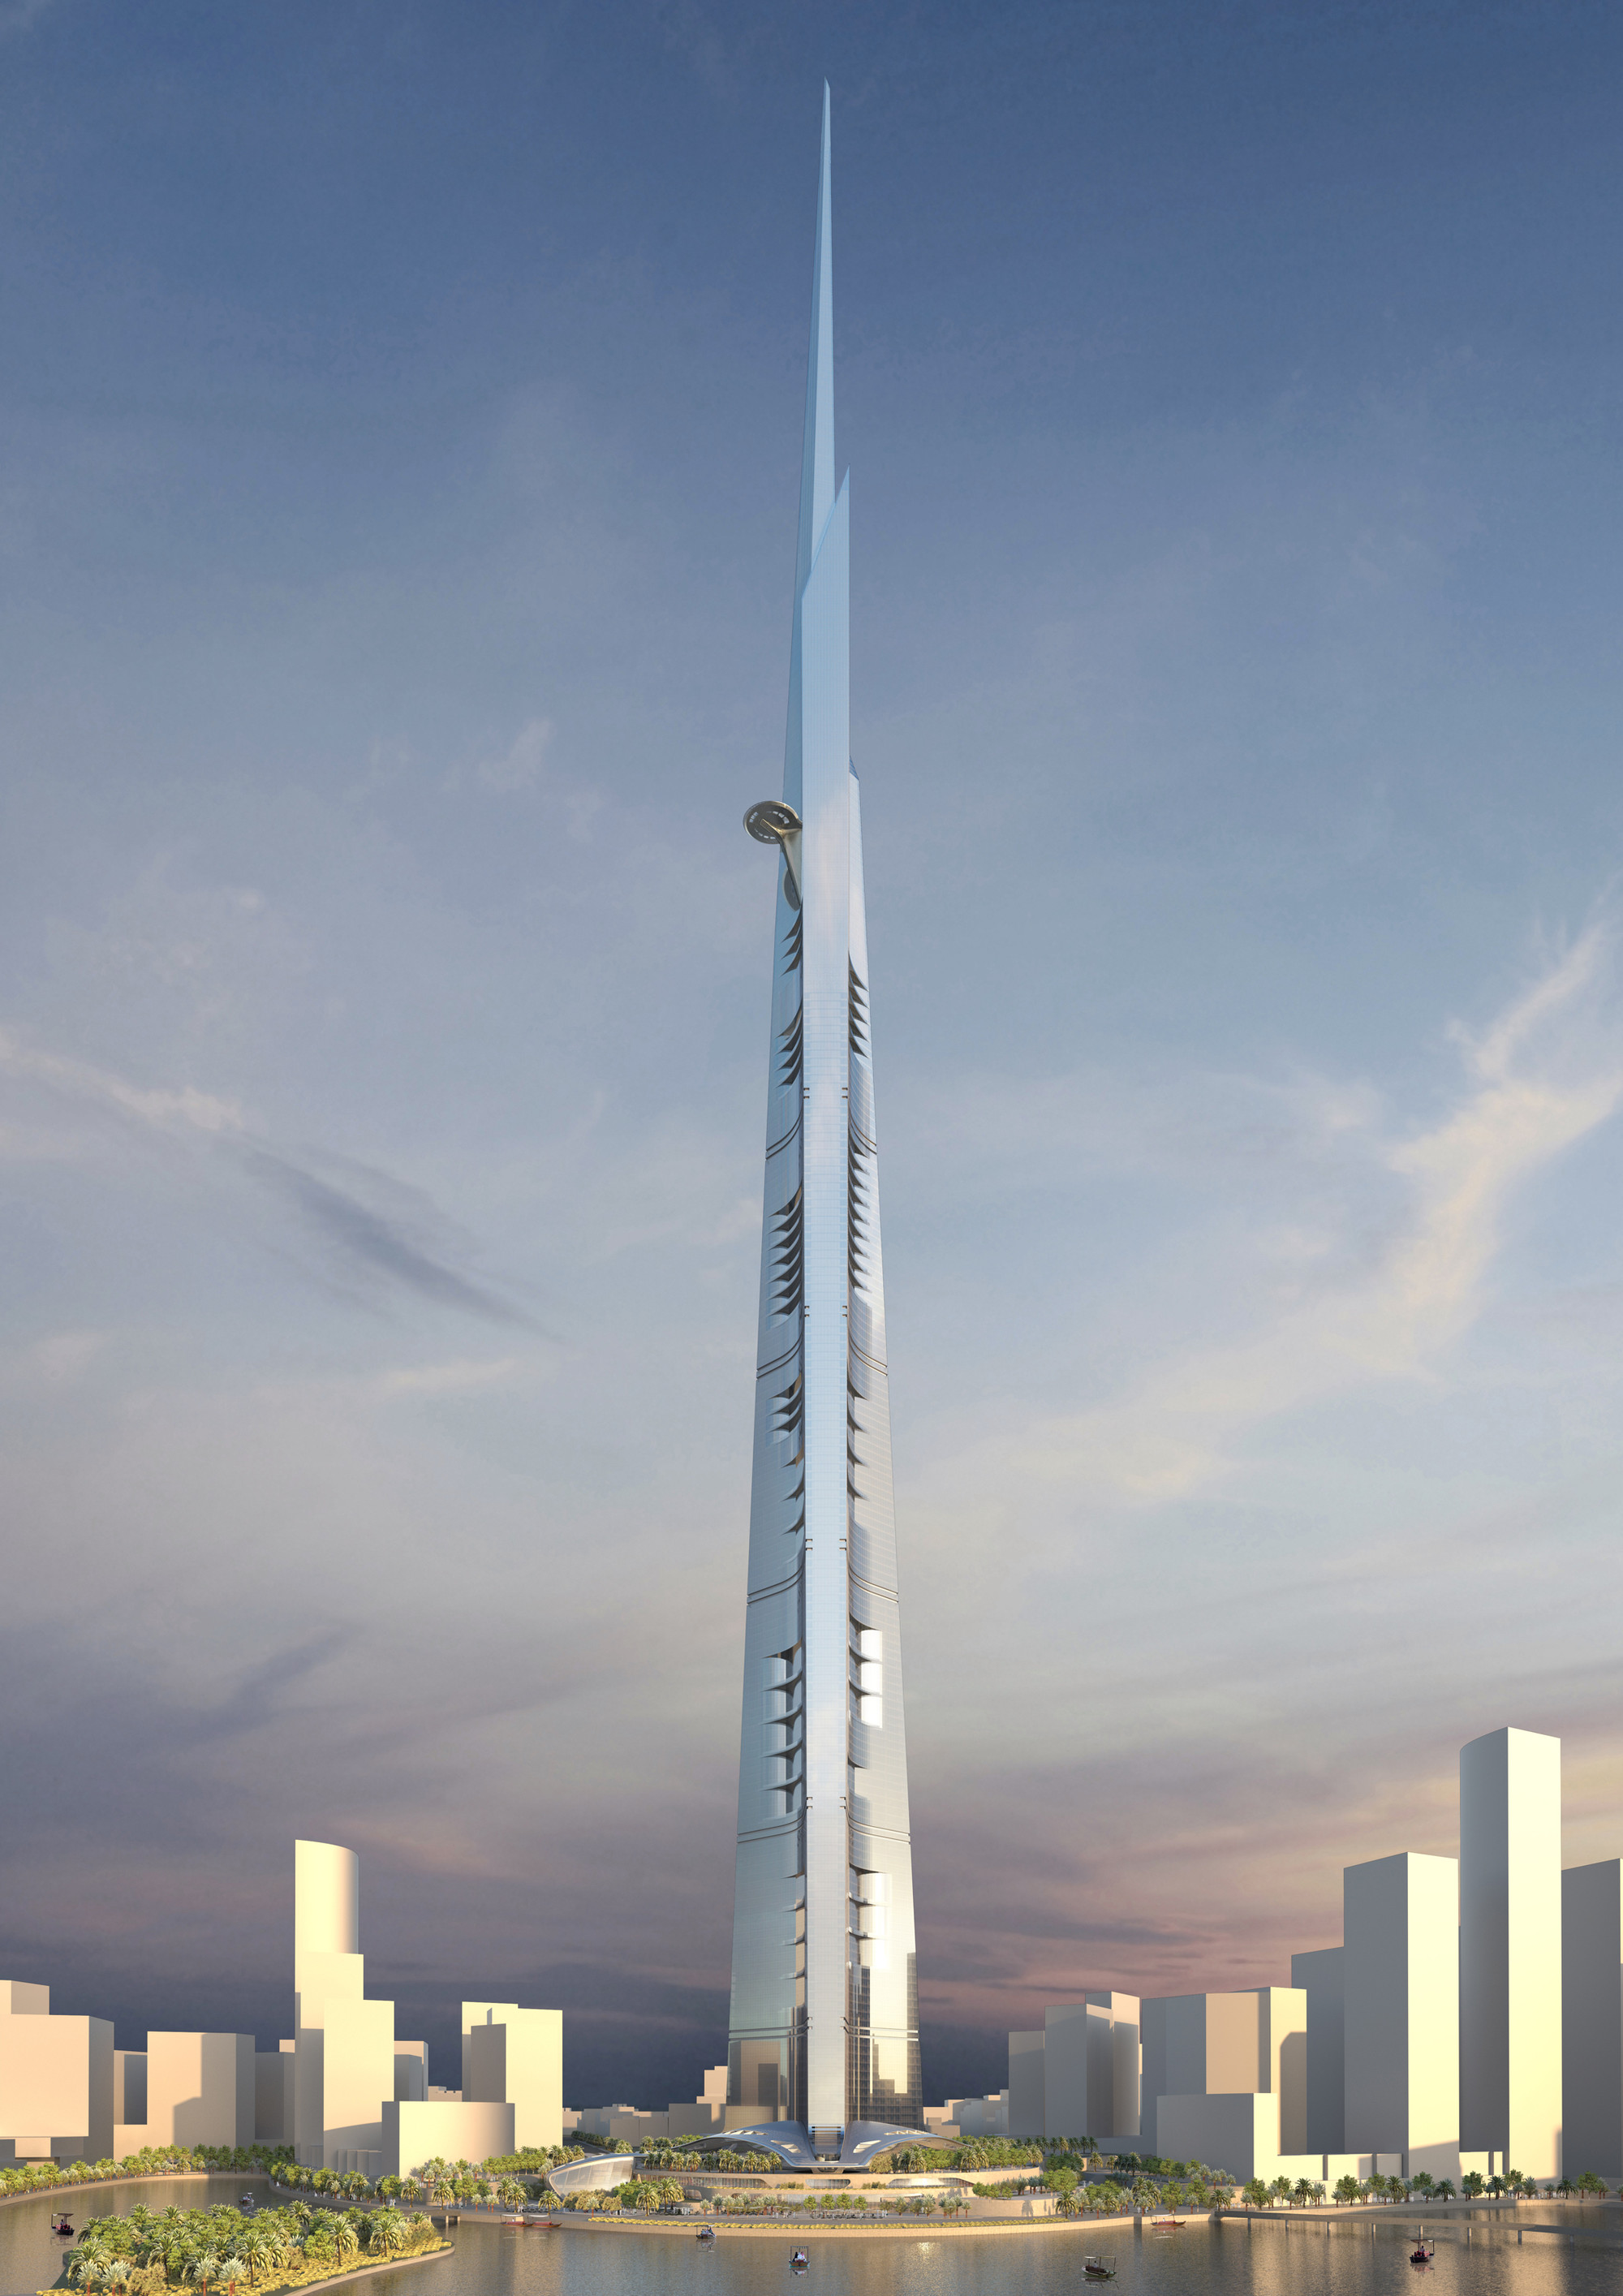 Vanity Height: How Much of a Skyscraper is Usable Space?